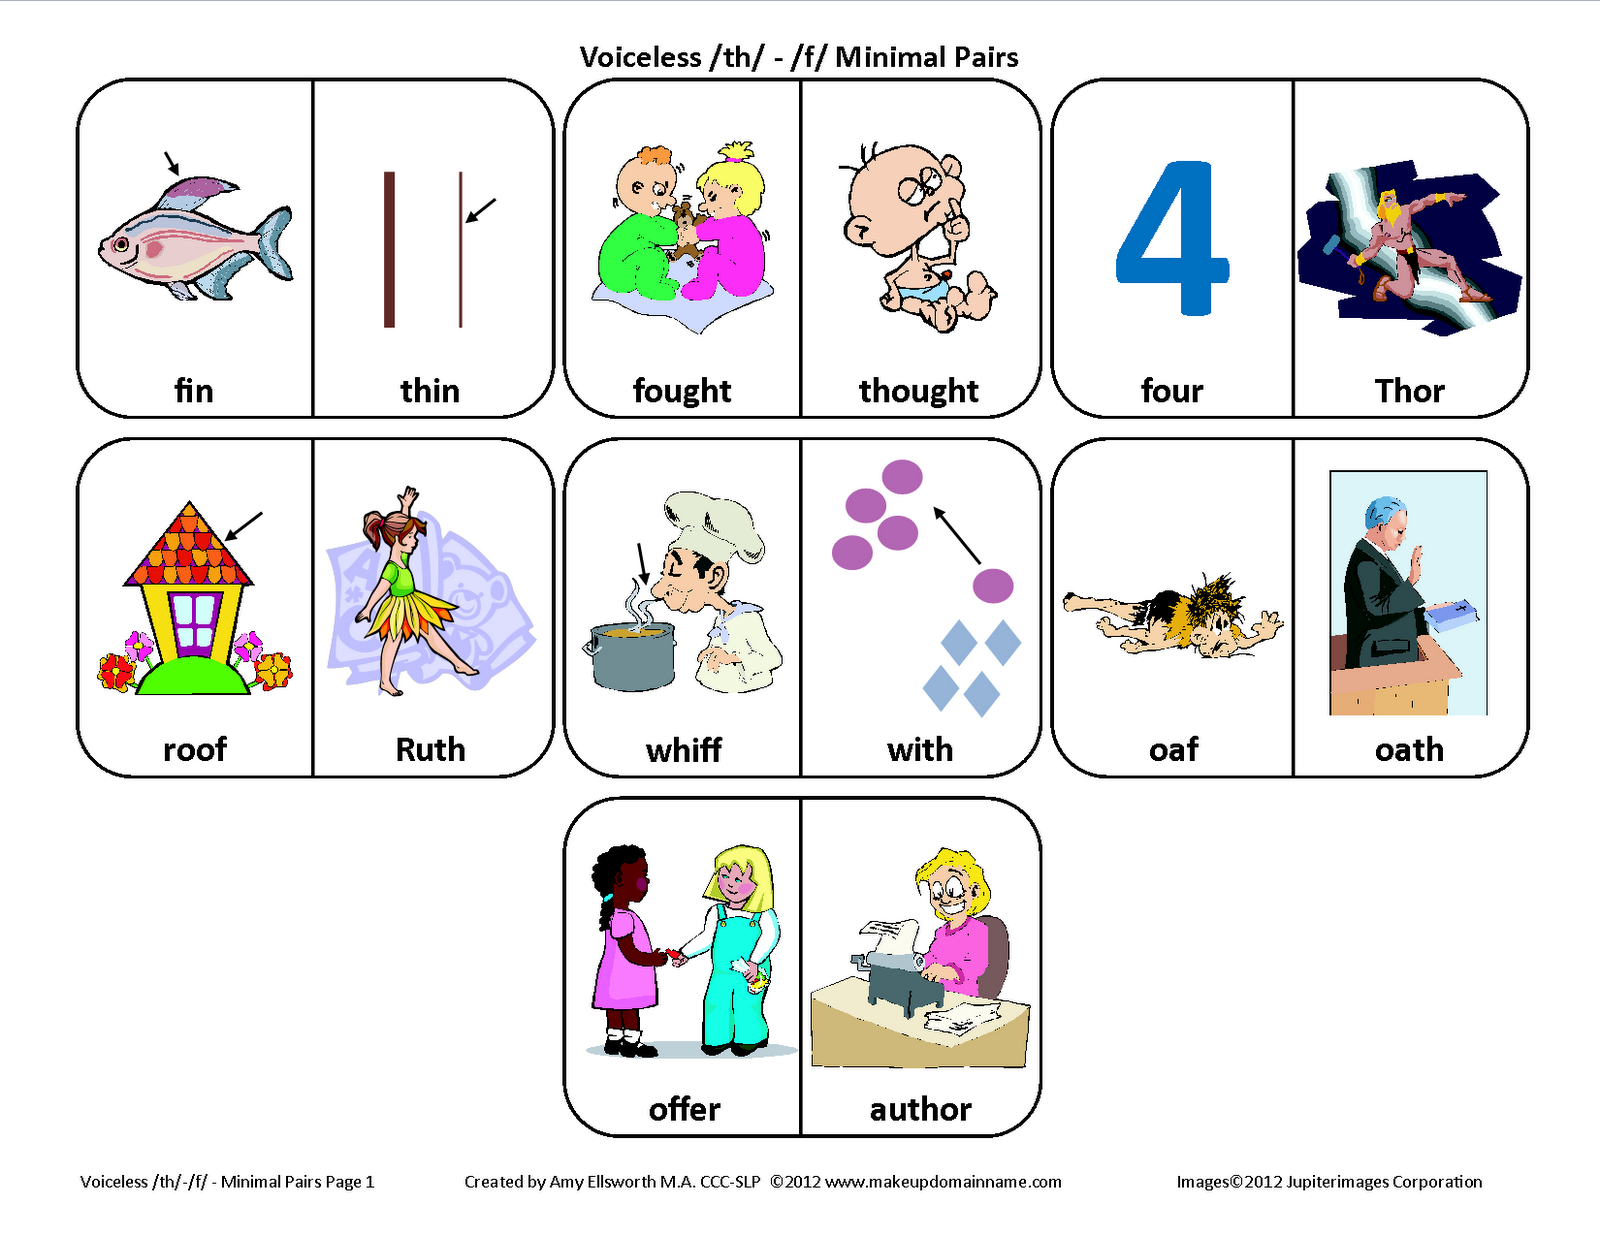 worksheet Minimal Pairs Worksheets testy yet trying voiceless th f minimal pairs picture cards description